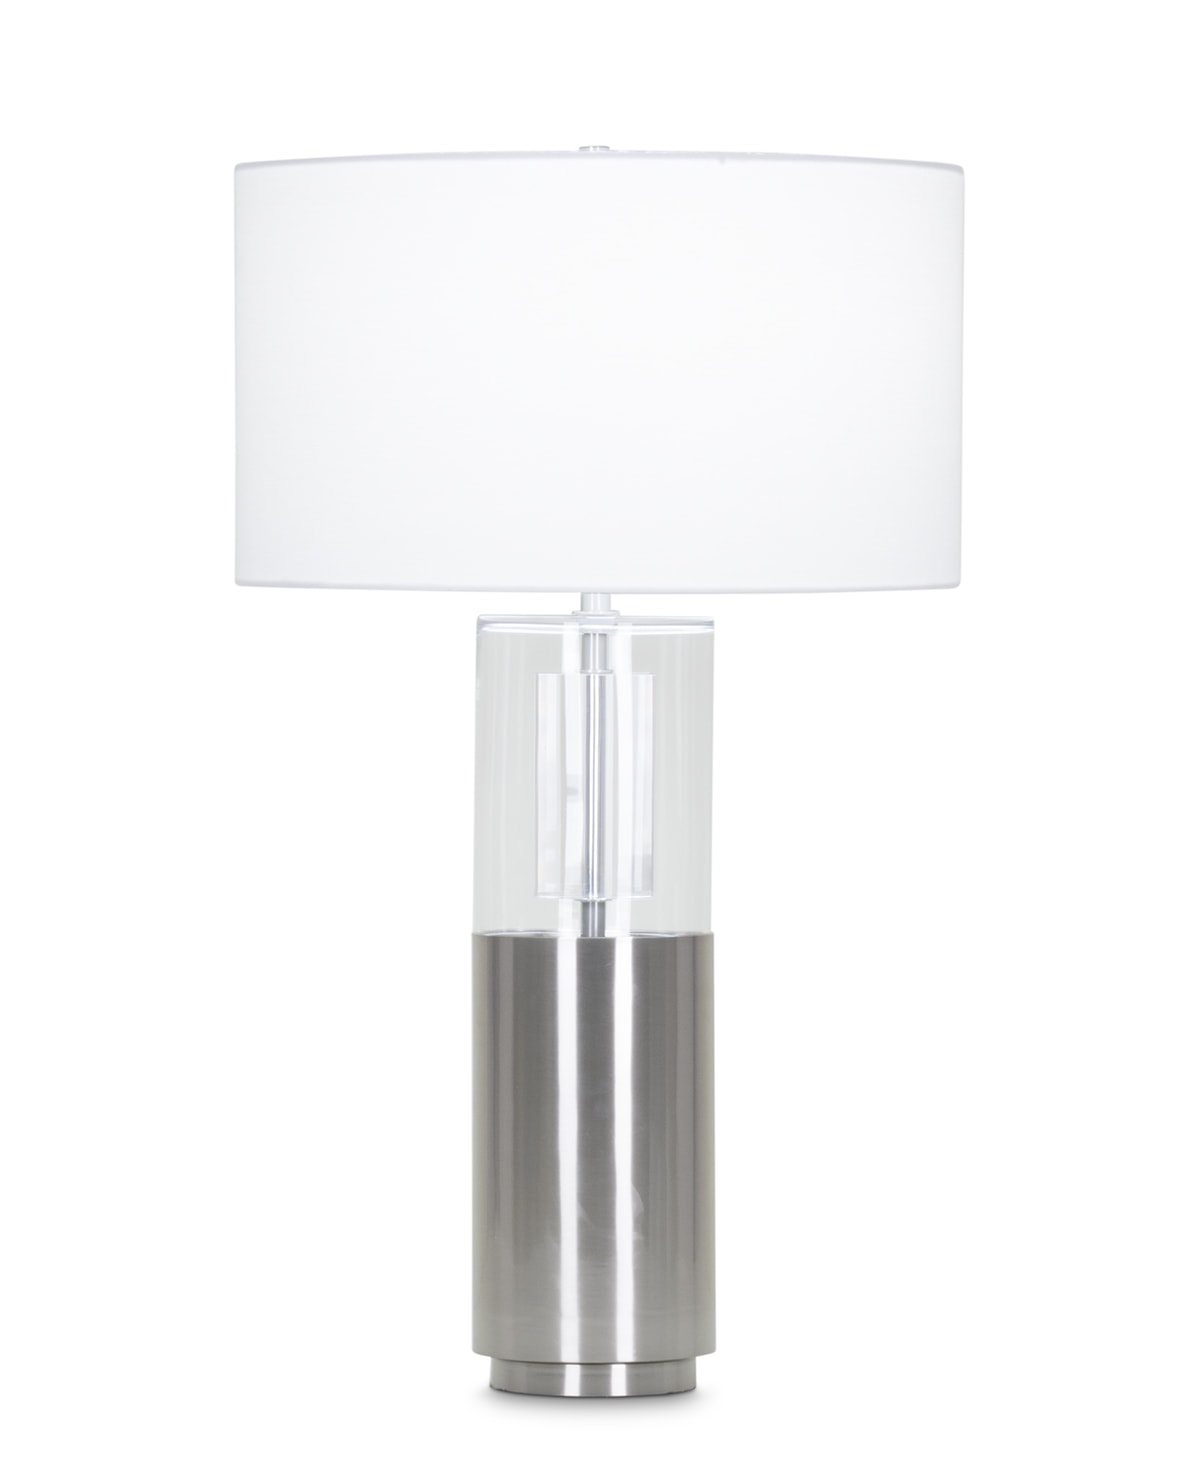 FlowDecor Alexander Table Lamp in metal with brushed nickel finish and glass and white linen drum shade (# 3961)